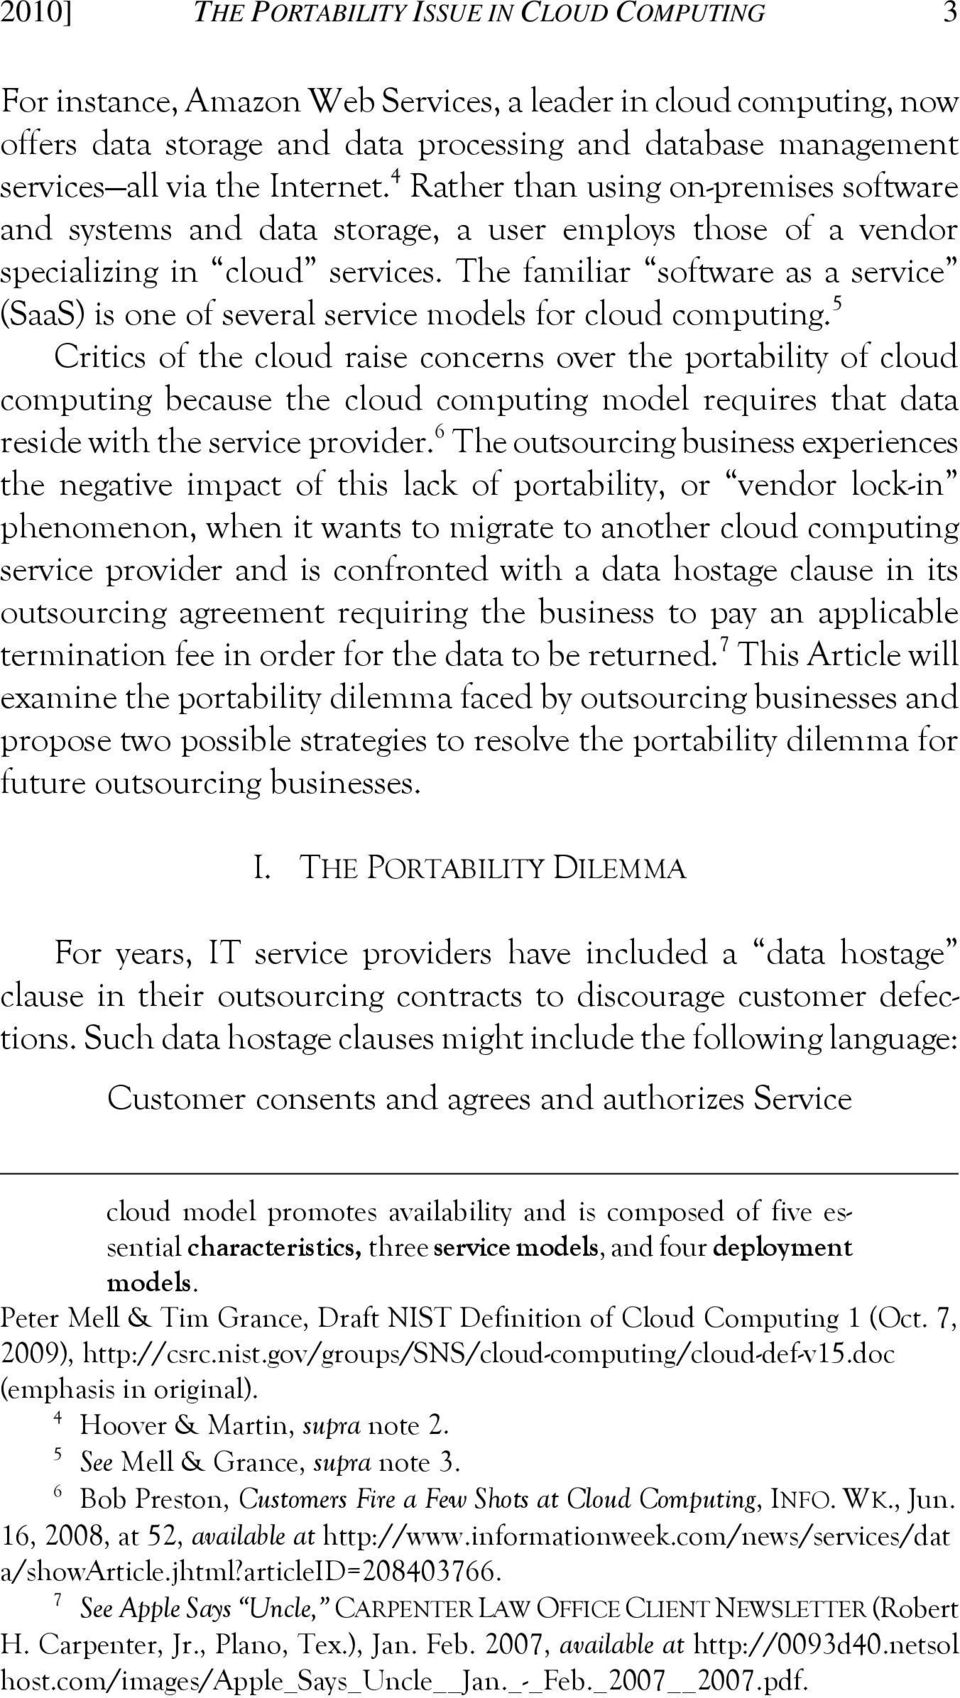 The familiar software as a service (SaaS) is one of several service models for cloud computing.